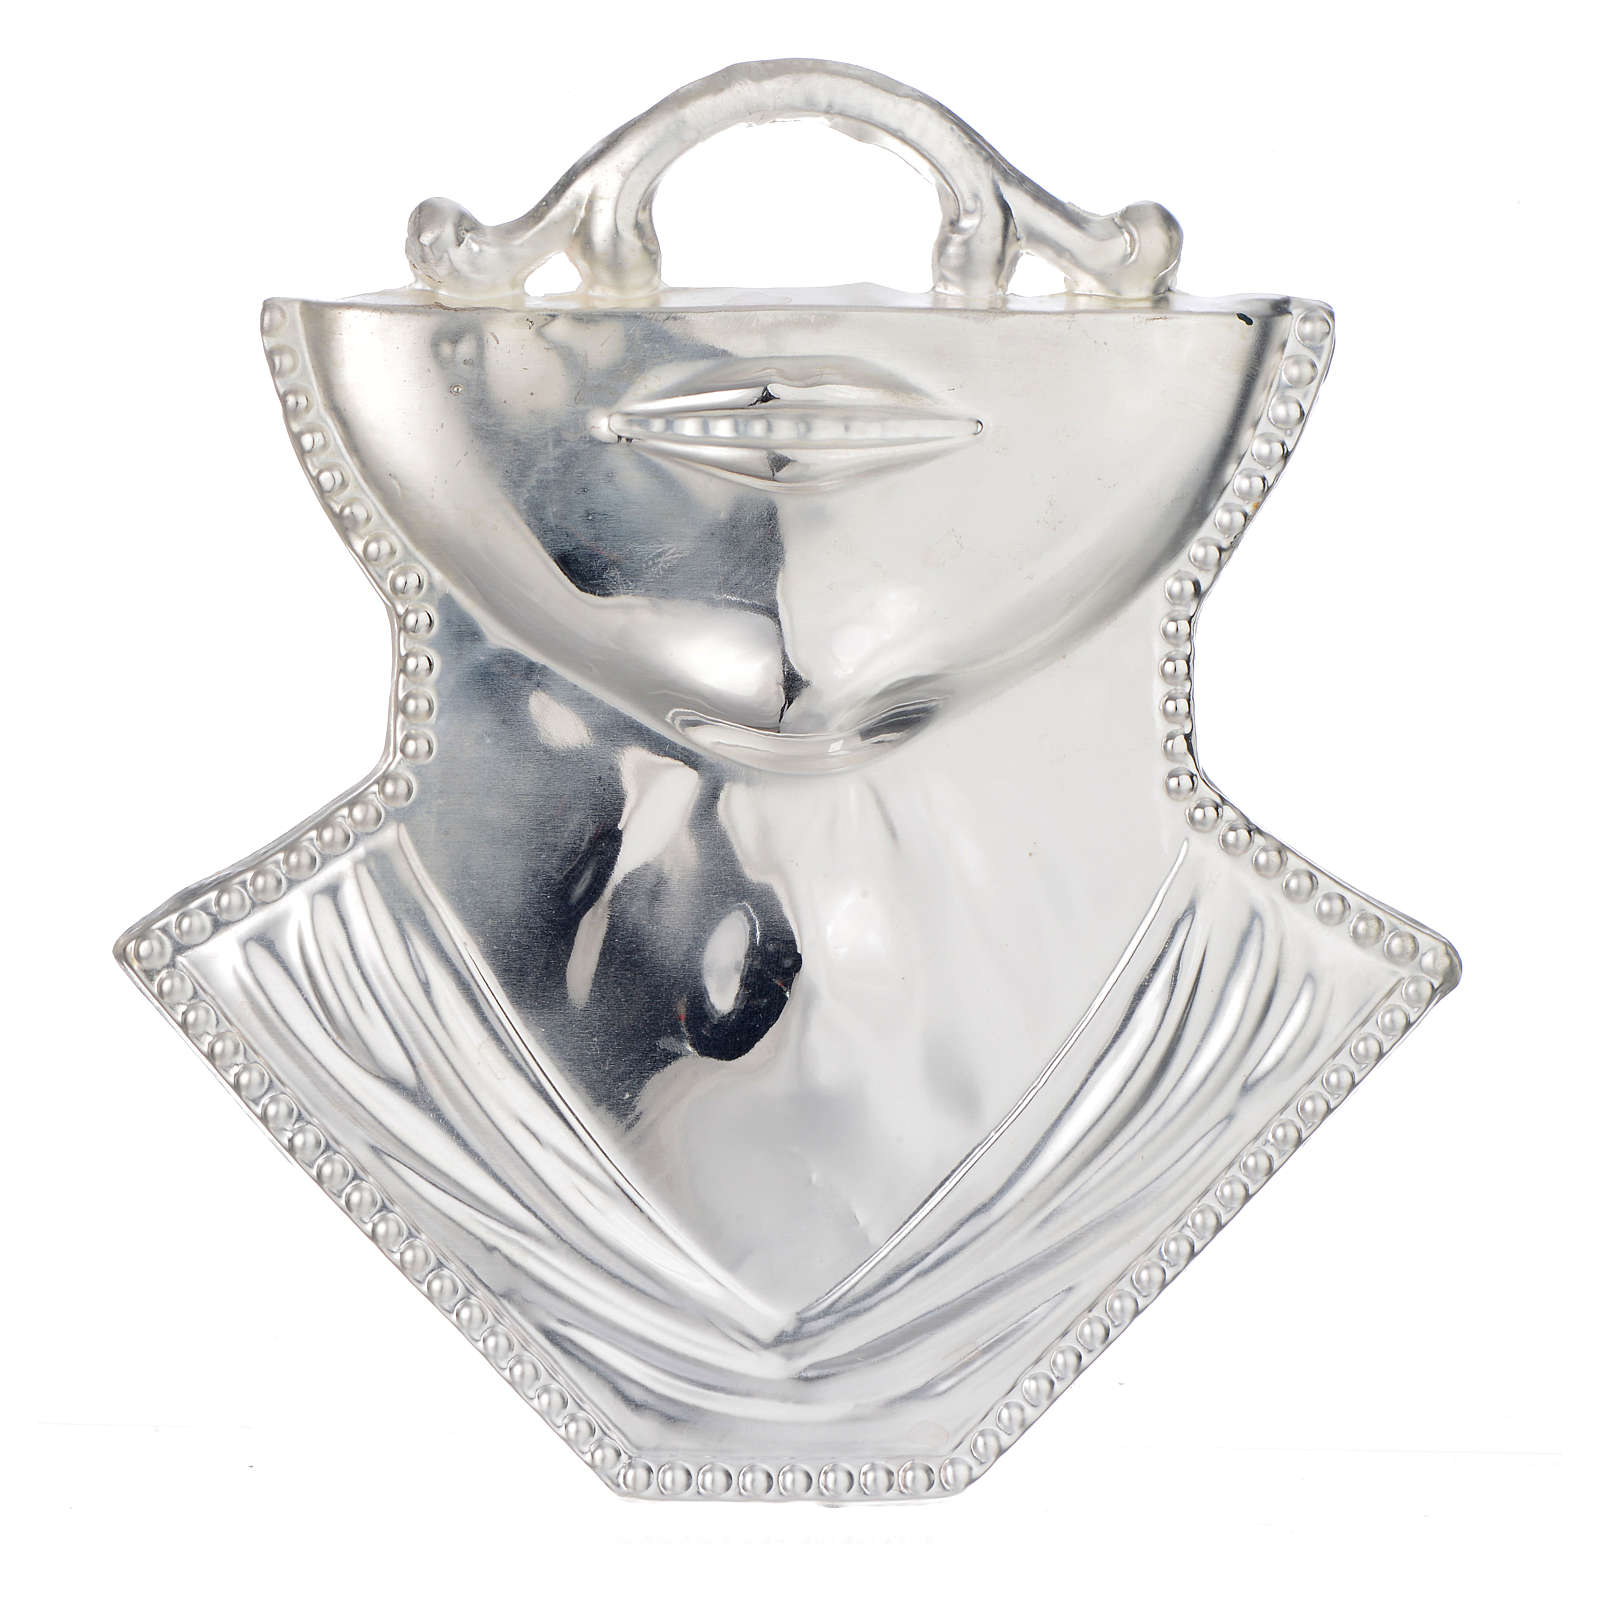 Ex-voto, throat in sterling silver or metal, 11x12cm 3